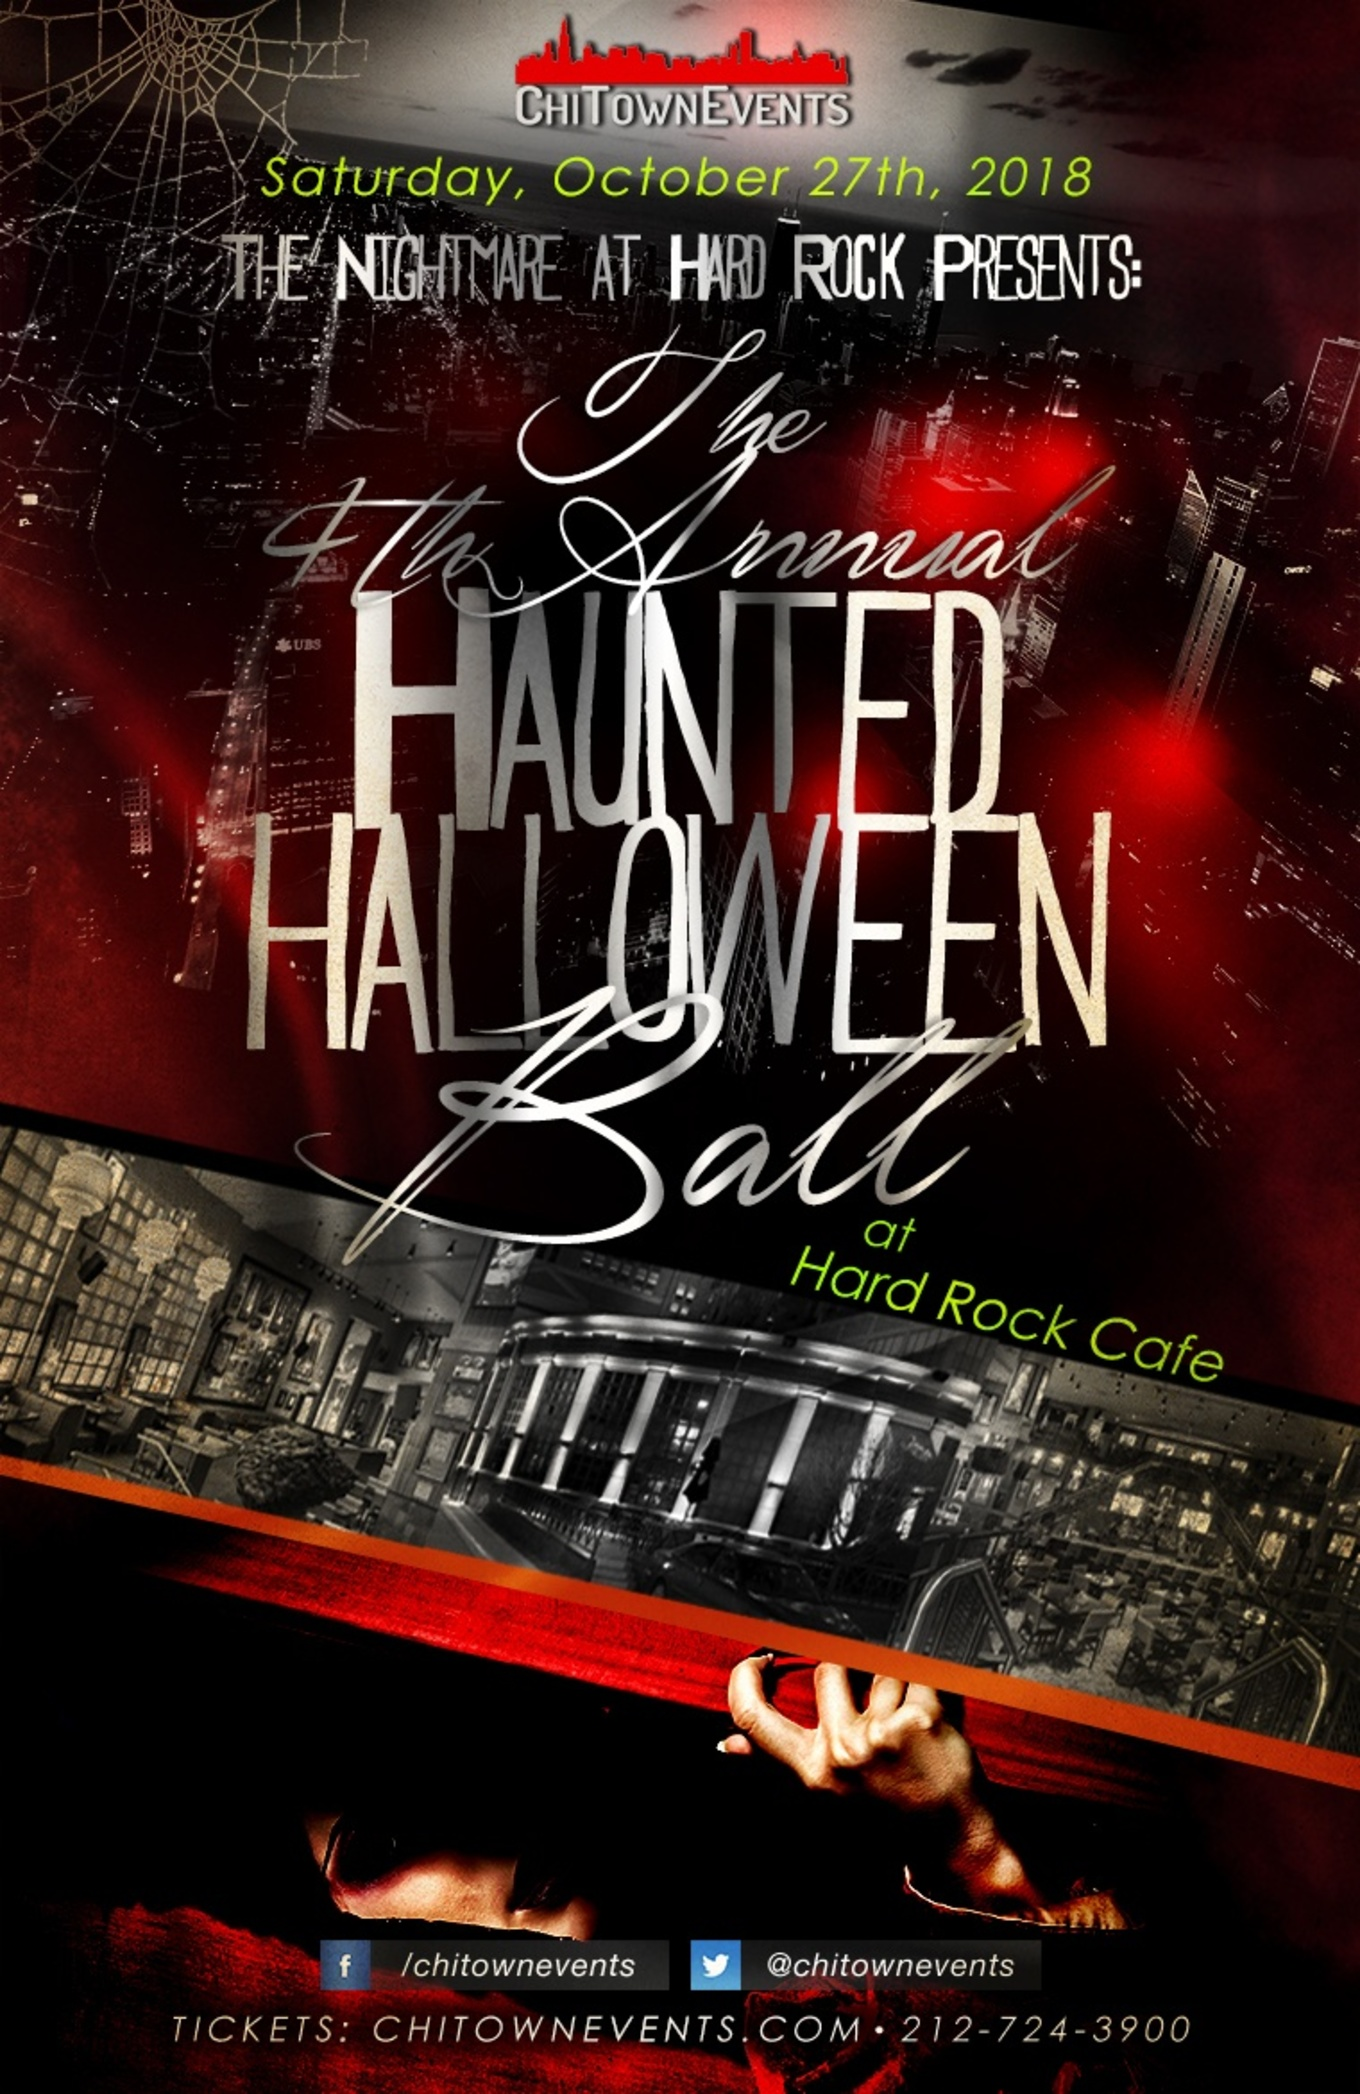 the nightmare at hard rock cafe presents the haunted halloween ball